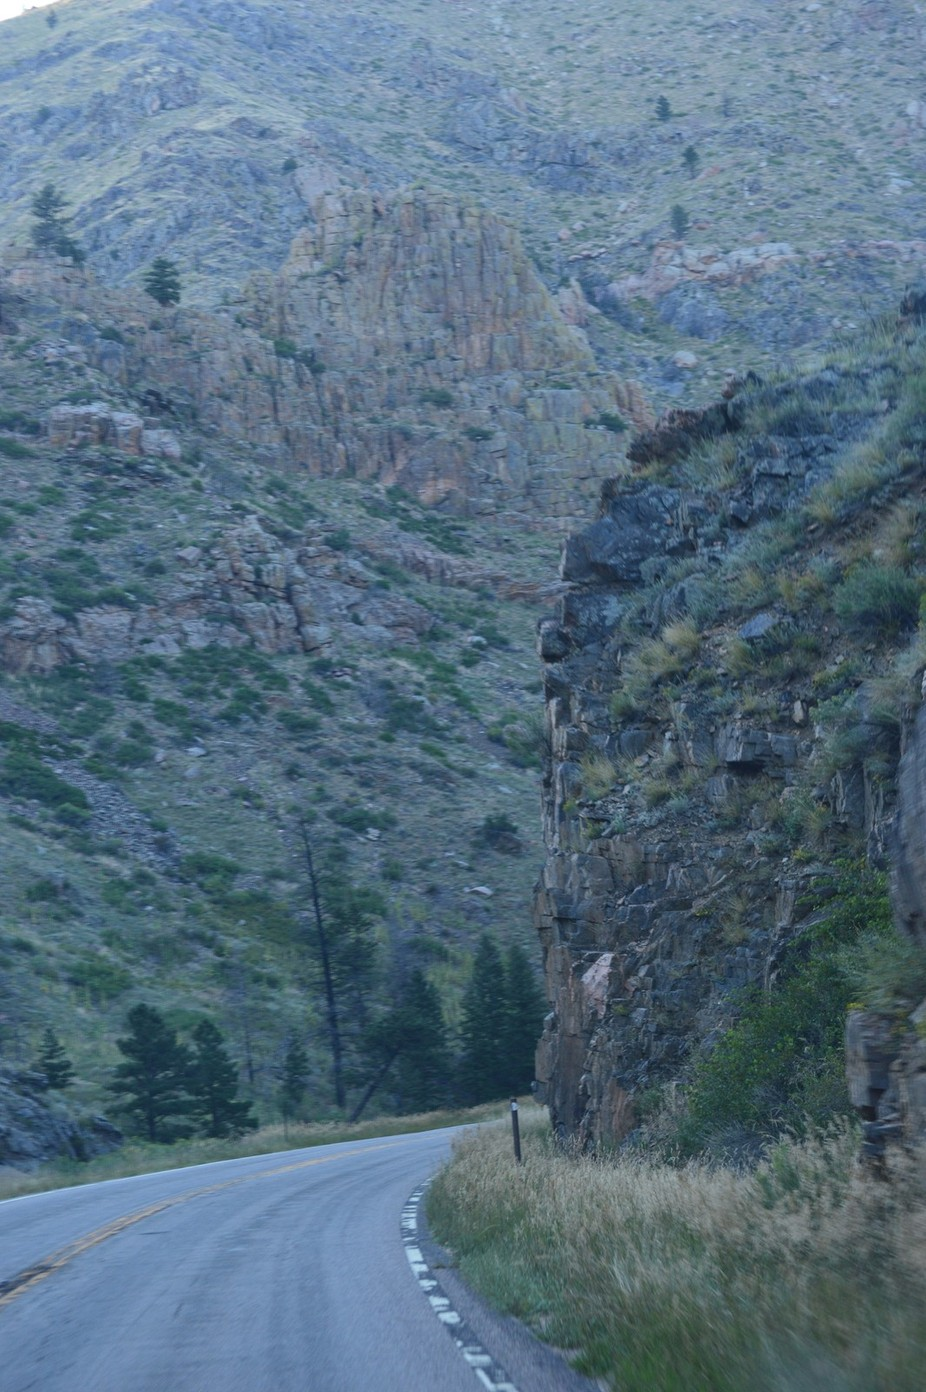 A curving road thru the mountains